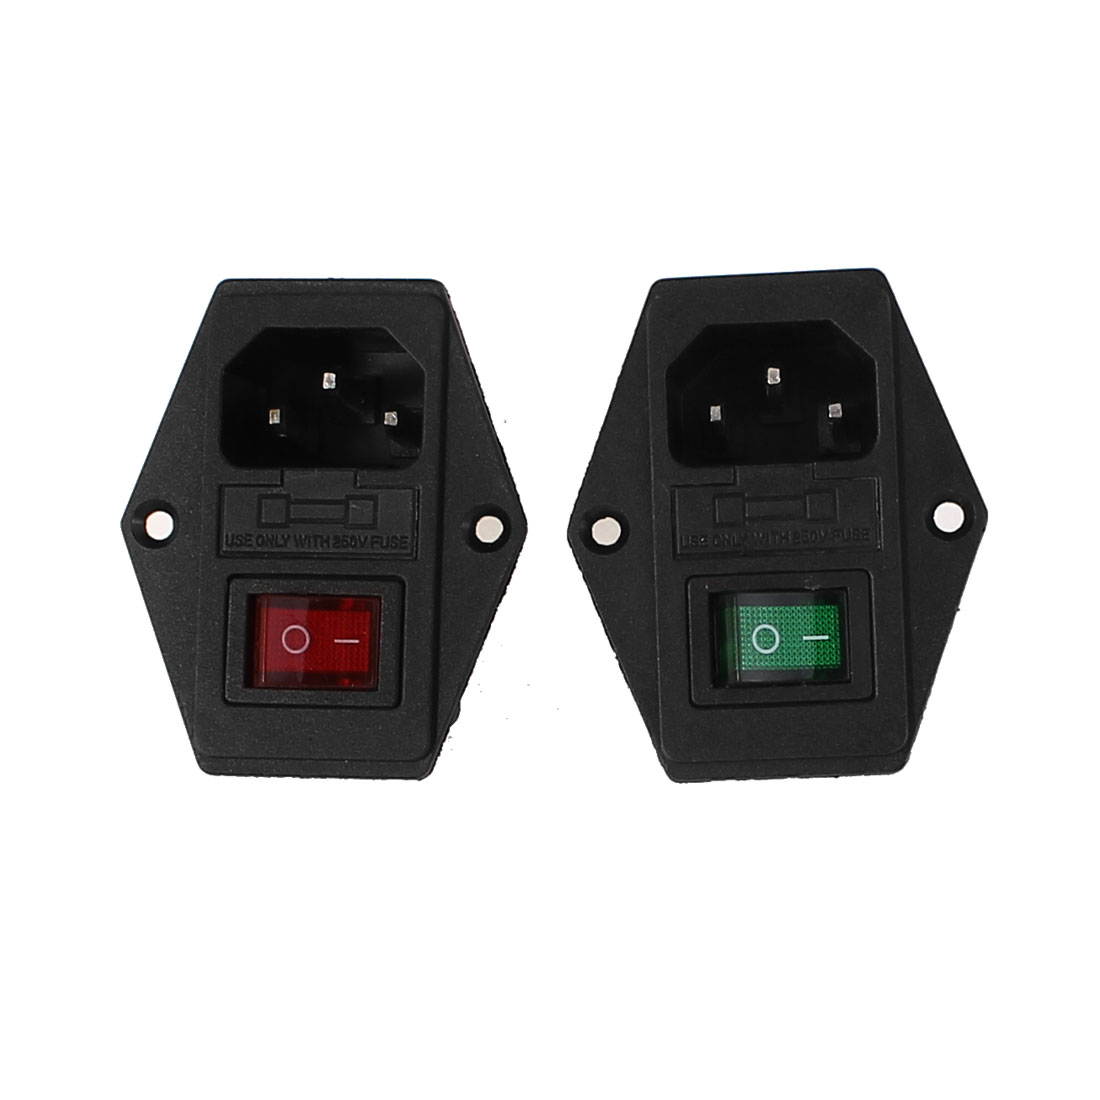 2 Pcs 4Pin DPST Green Red Light Rocker Switch IEC320 C14 Inlet Power Socket w Fuse AC 250V 5A